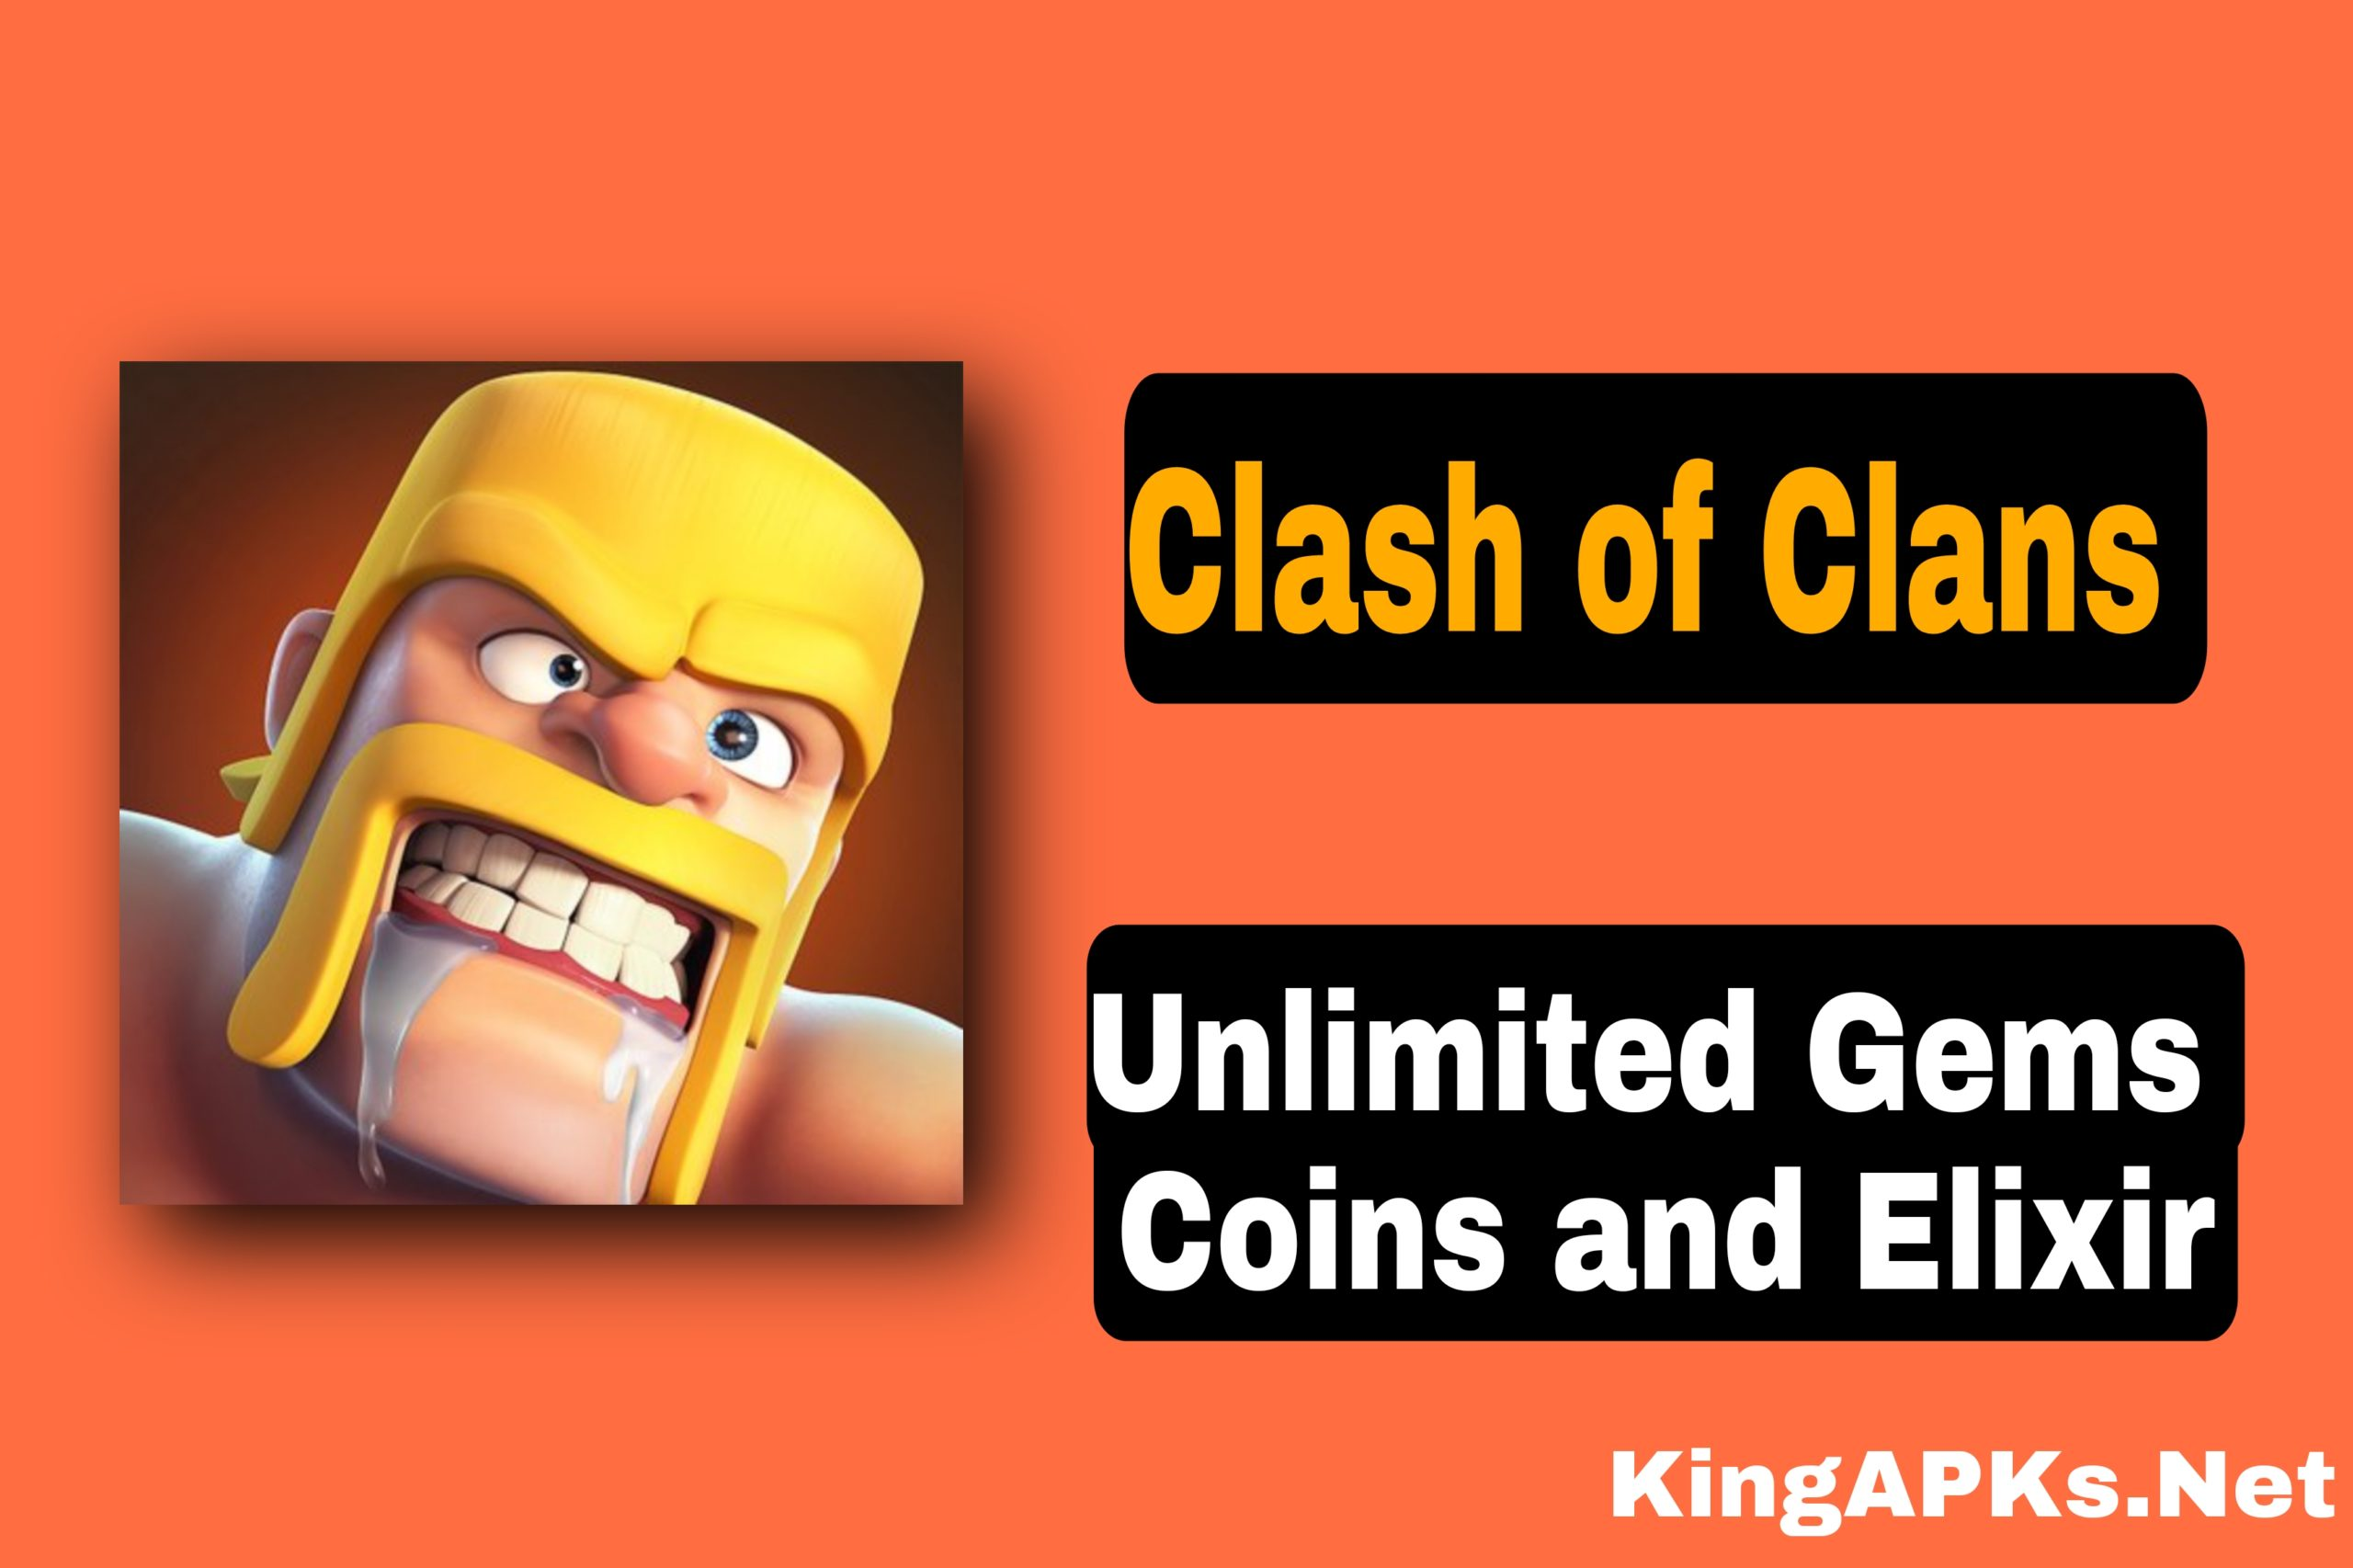 Clash of Clans Mod Apk v14.93.6 (Unlimited Gems, Troops Coins)